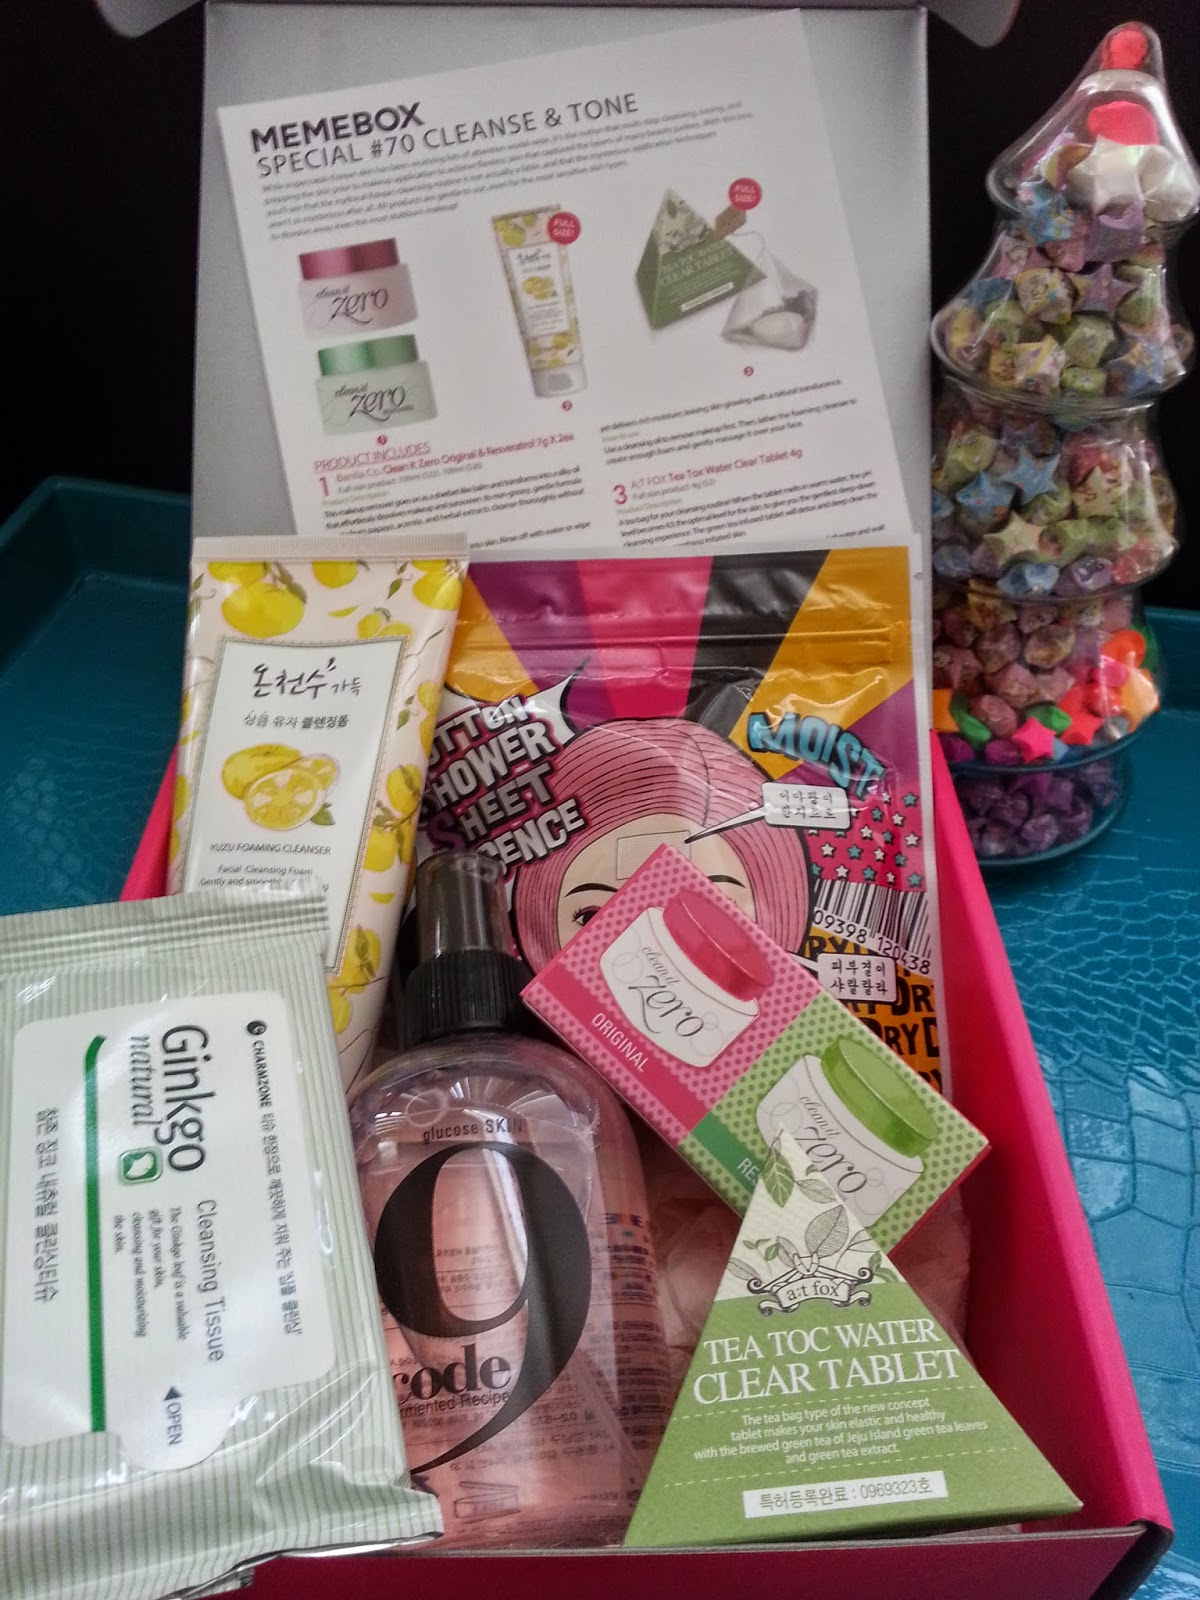 Unboxing: Memebox Cleanse and Tone Special